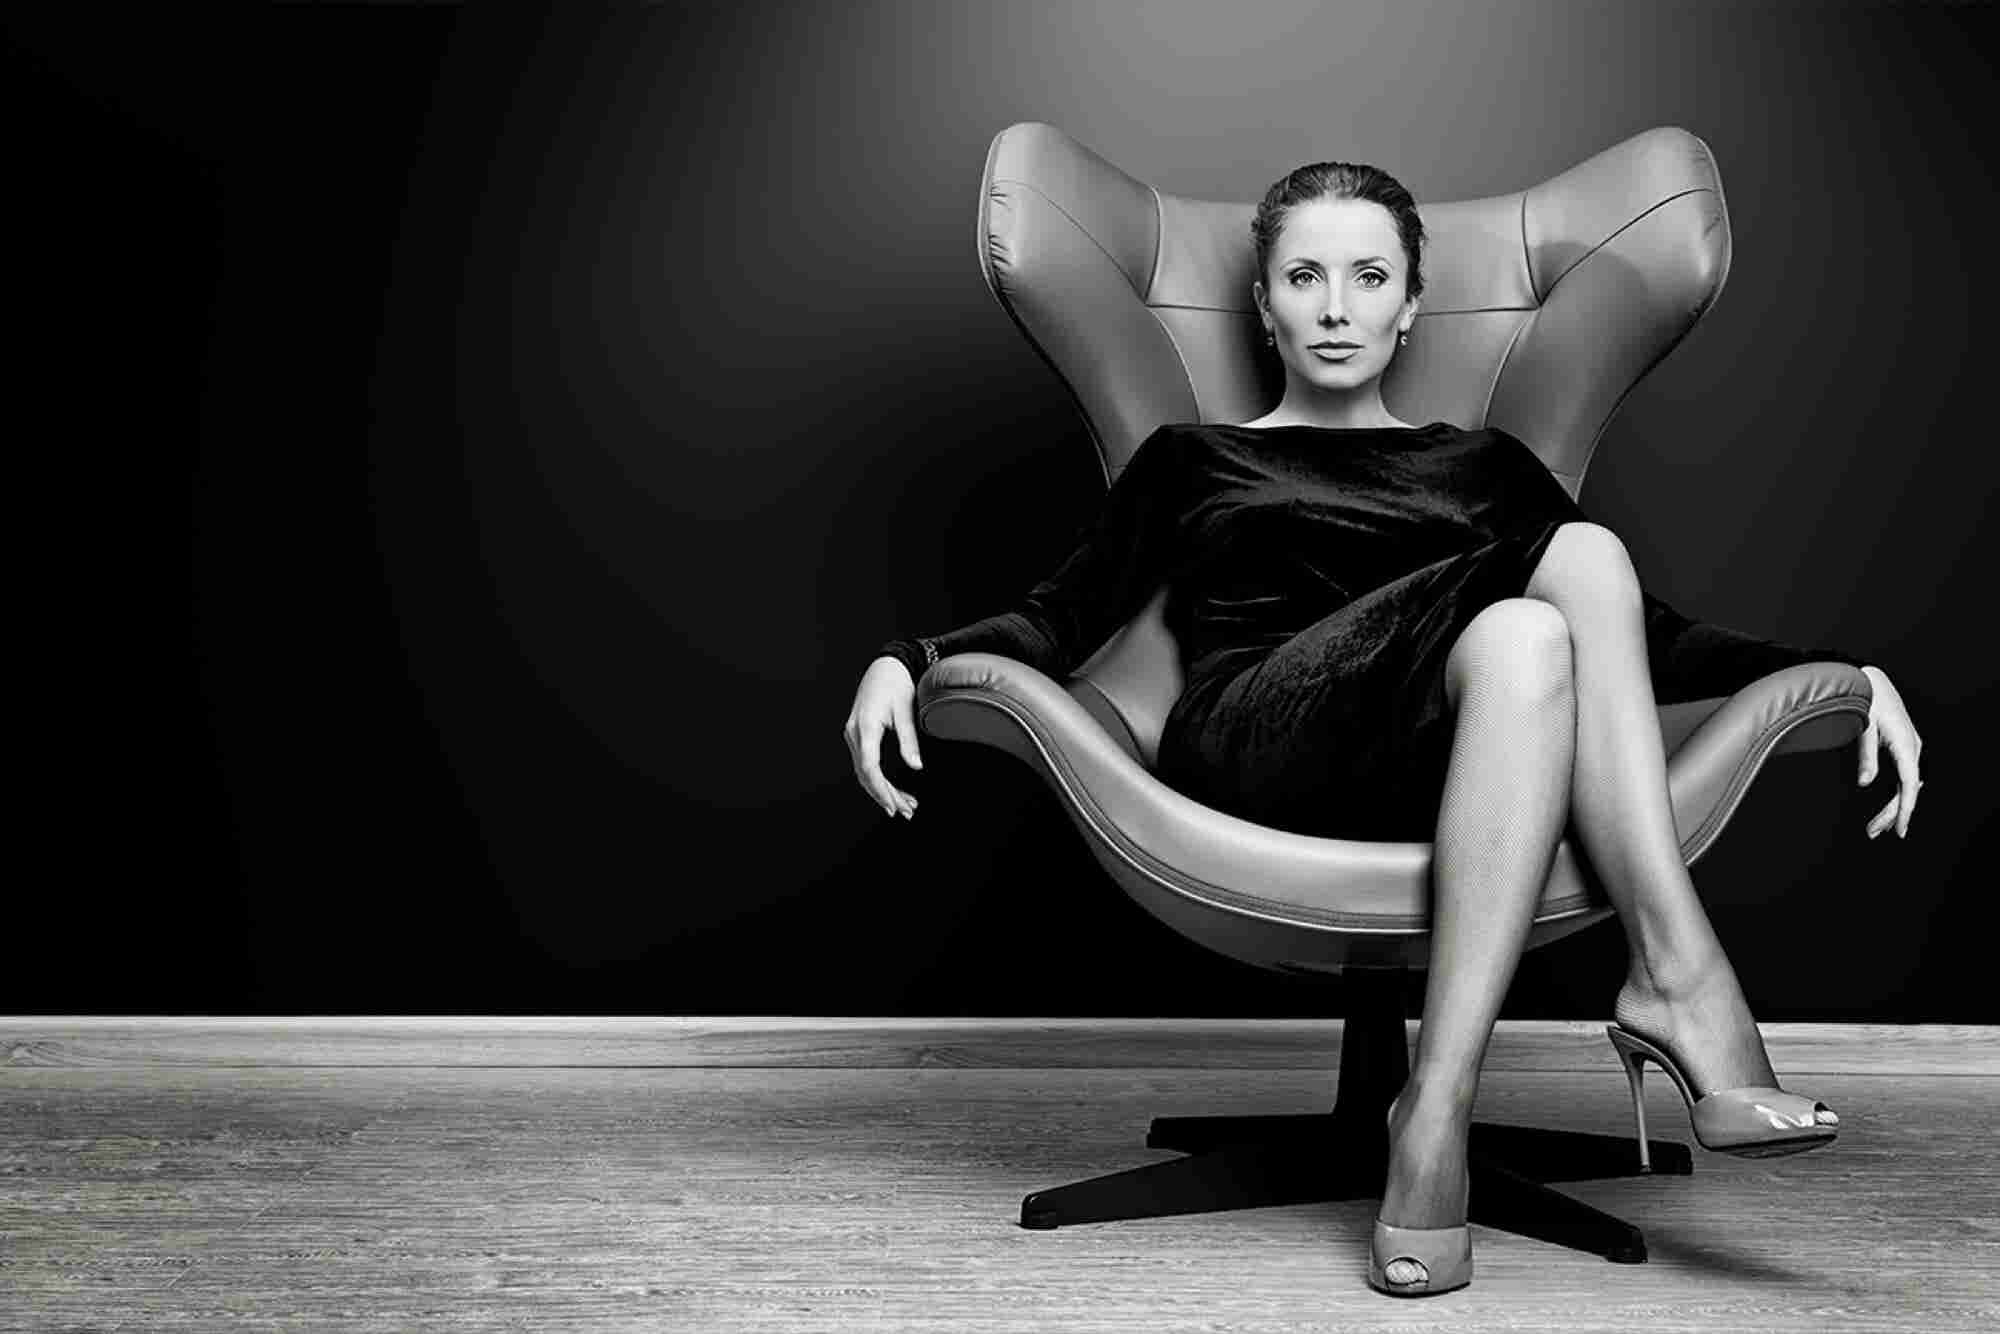 6 Pivotal Things Women Must Keep In Mind While Becoming An Entrepreneur